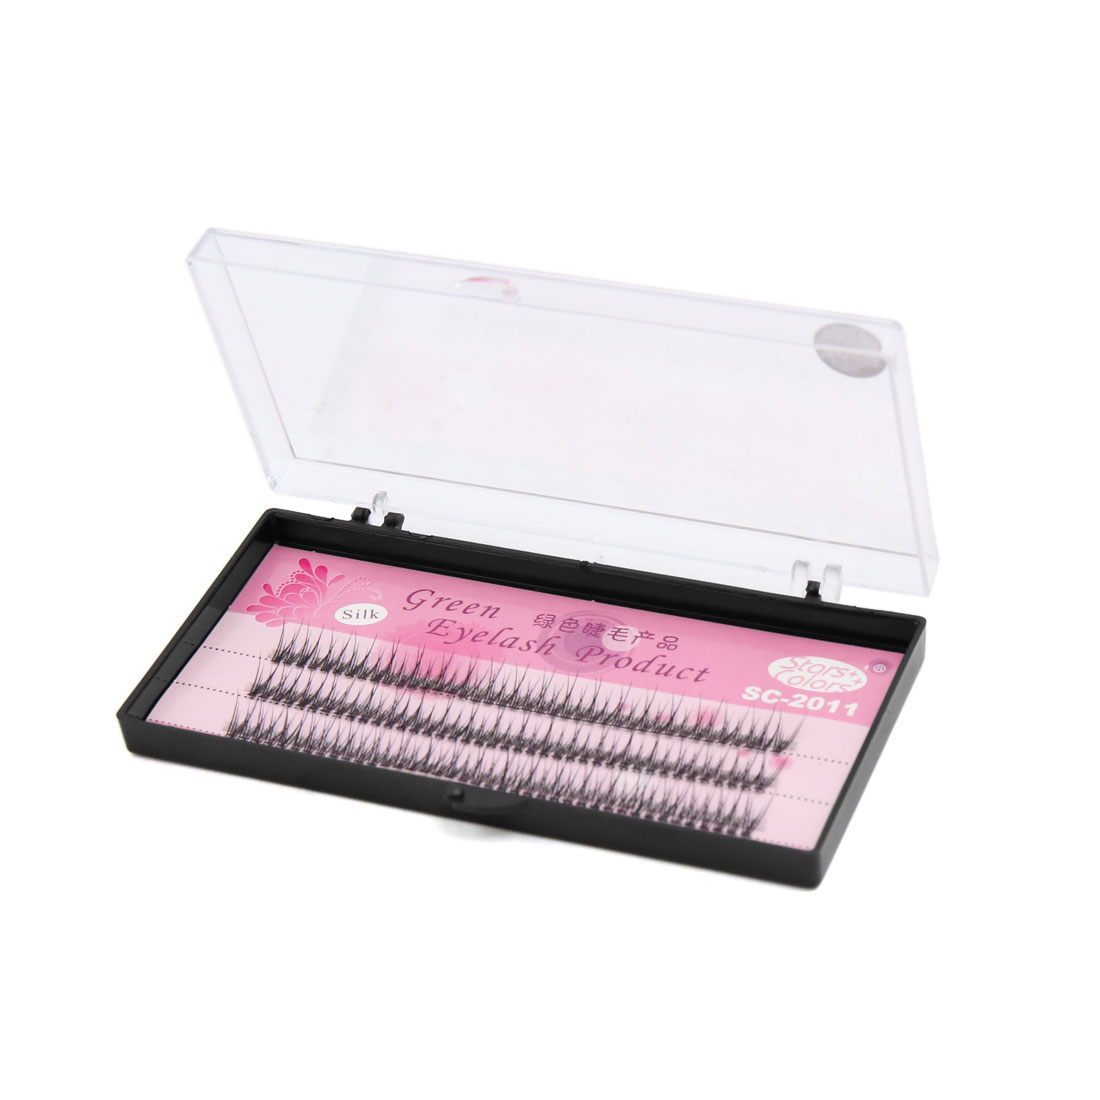 120 Pcs 10mm Long Natural Looking Curl Individual Cluster False Eyelashes Extension Makeup Tool